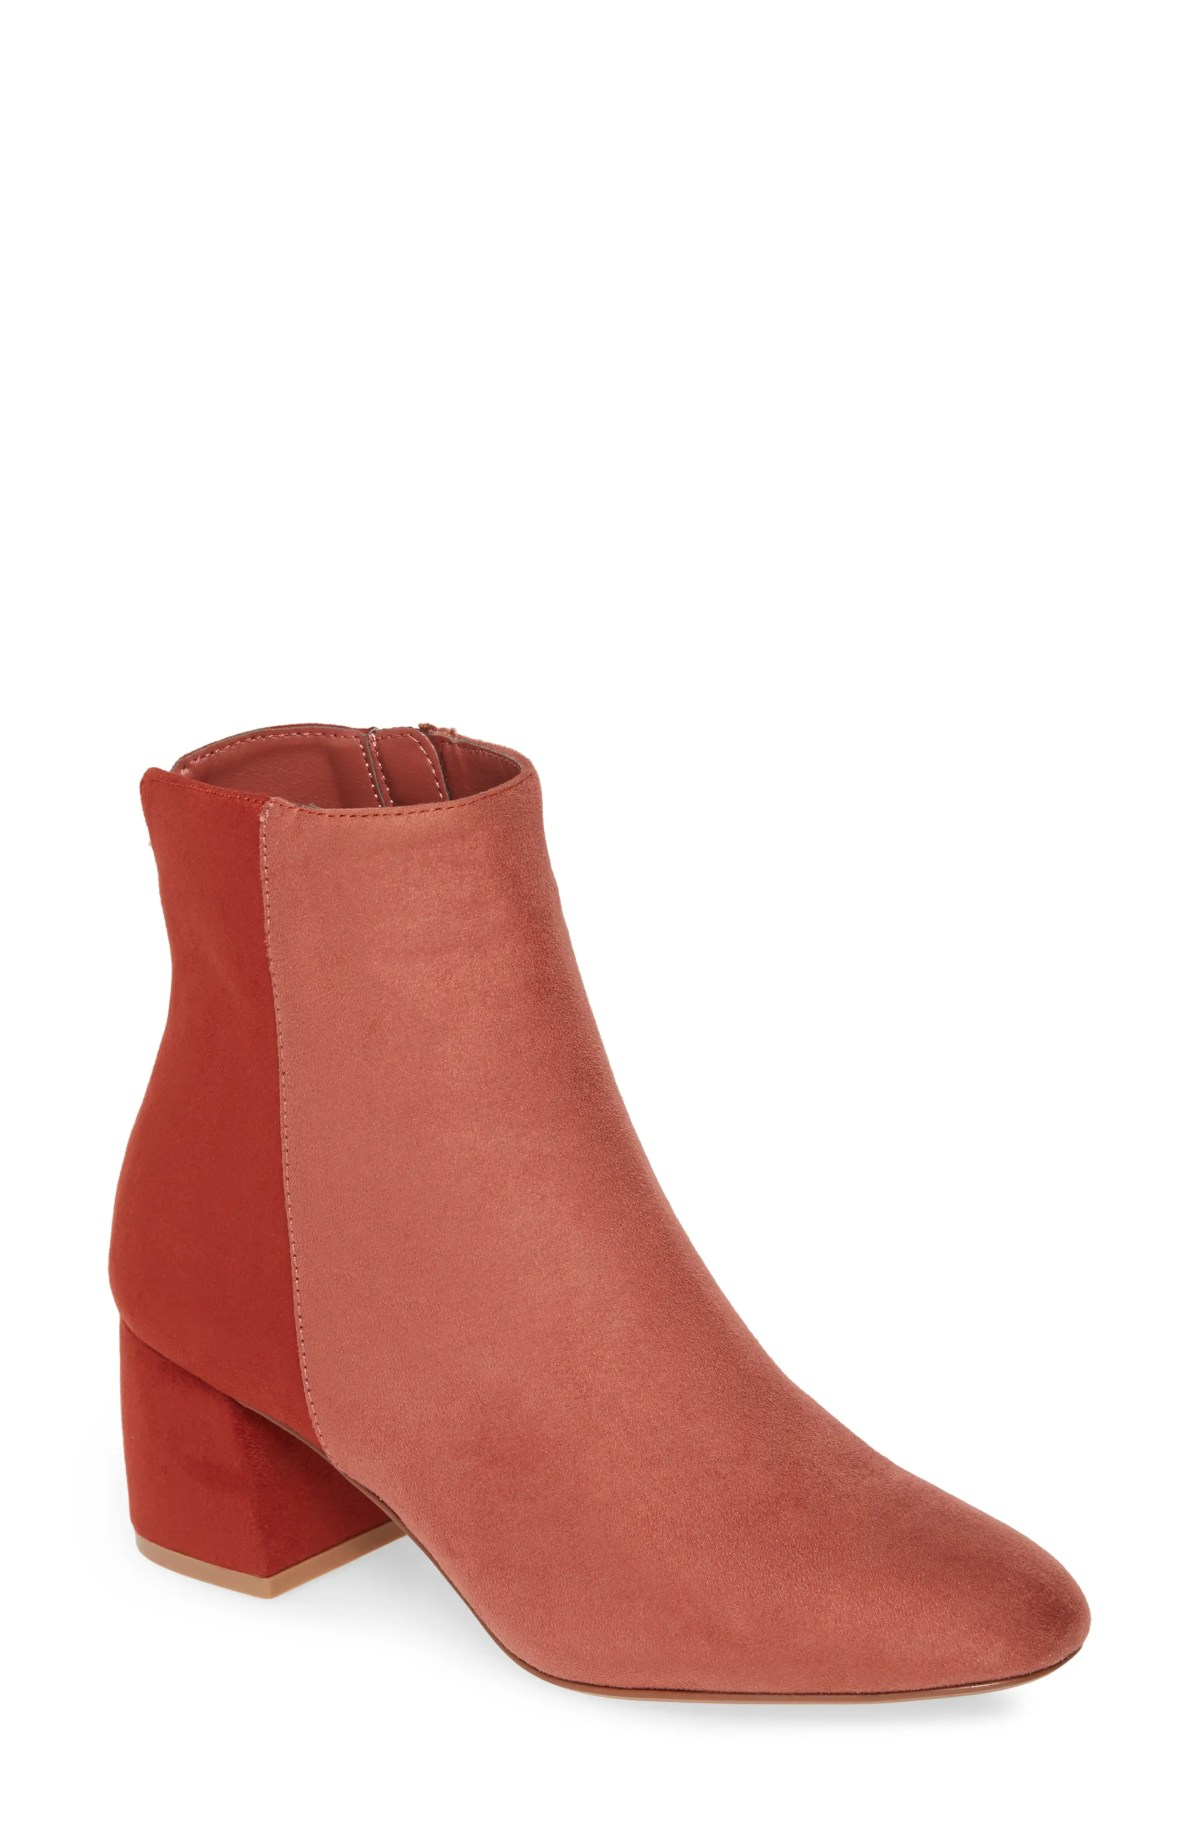 CHINESE LAUNDRY Davinna Bootie, Main, color, RHUBARB SUEDE